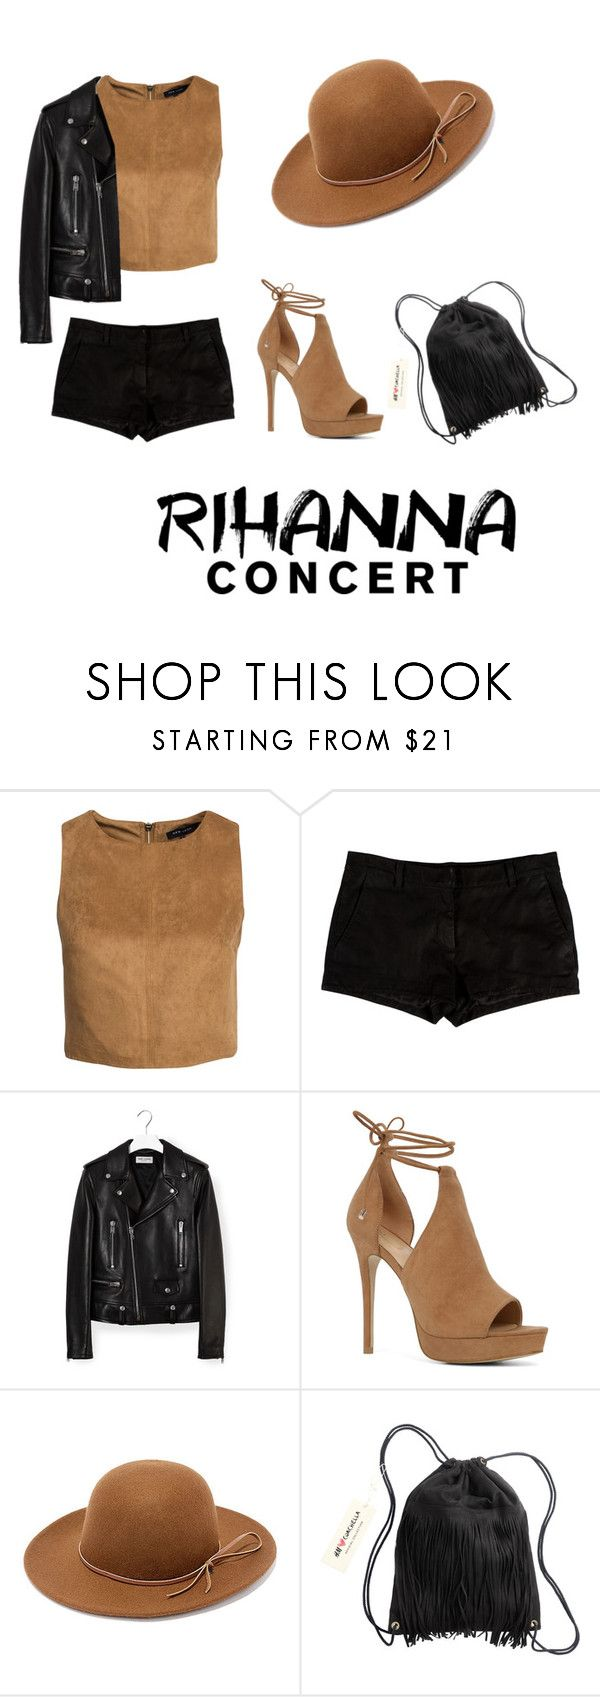 """Rihanna Concert- Black and Brown"" by gabydesigner on Polyvore featuring New Look, L'Agence, Yves Saint Laurent, ALDO, RHYTHM and H&M"